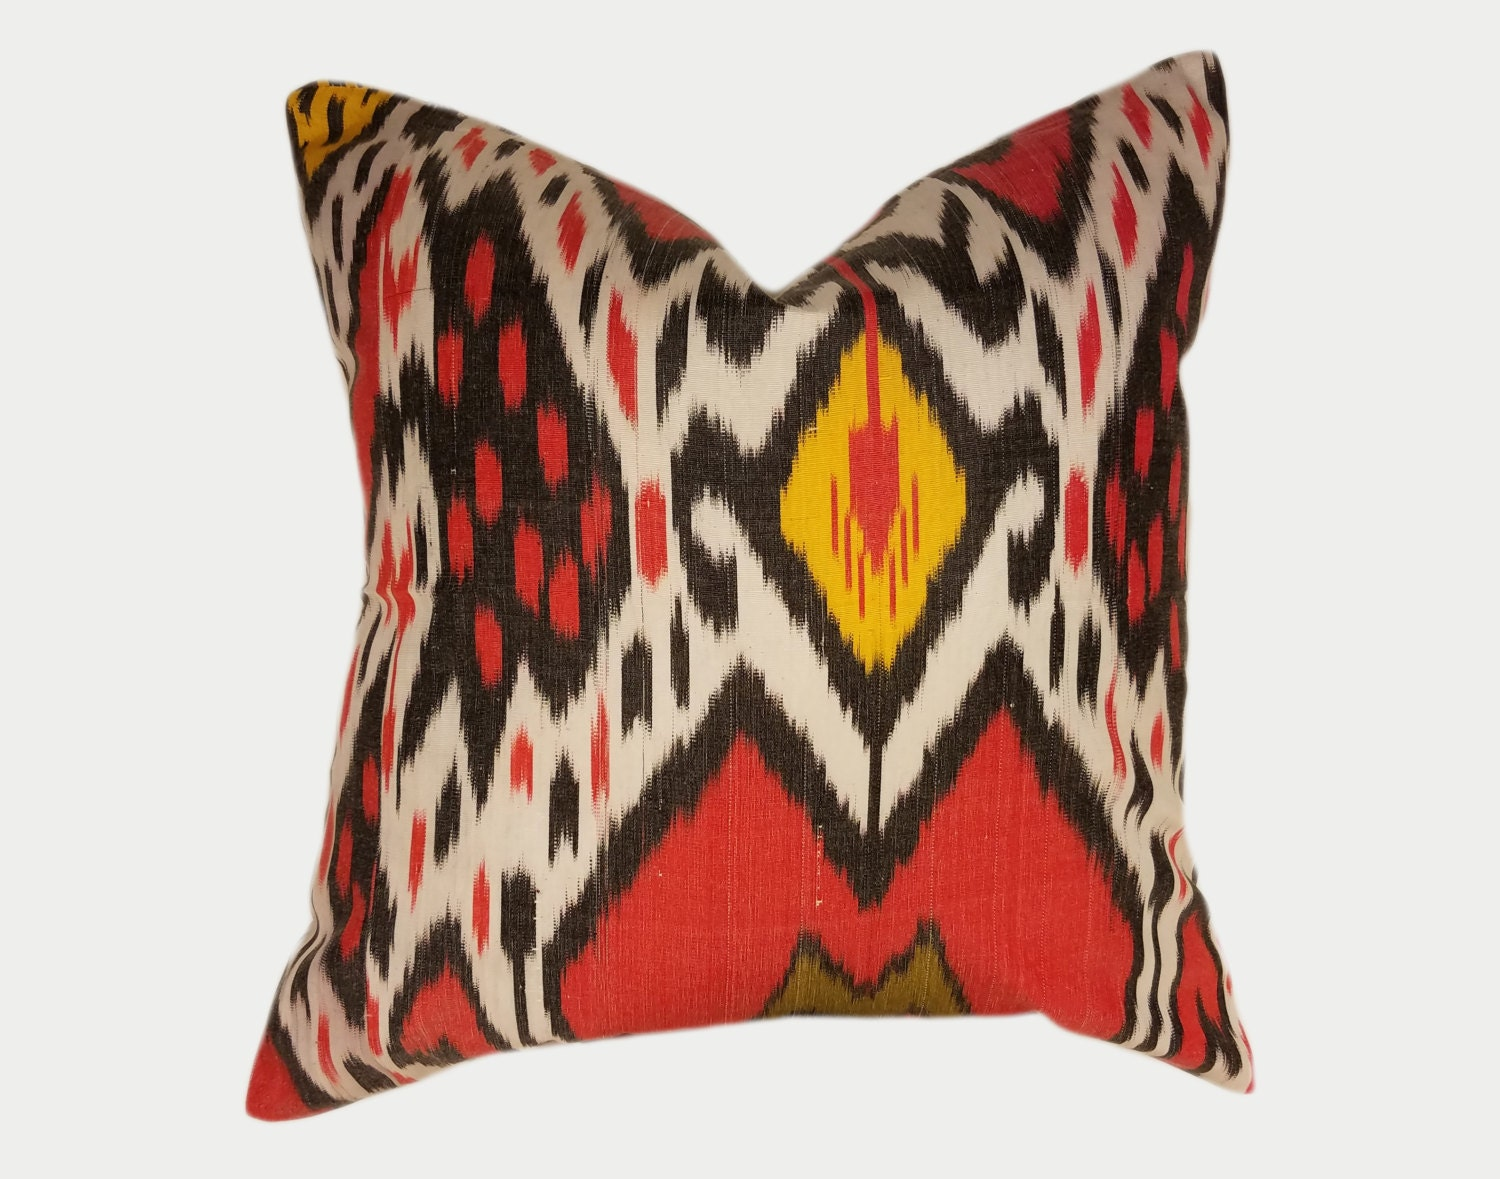 designer throw pillow covers ballard essential throw pillow cover simple ikat pillow ikat pillow cover ab ikat throw pillows designer pillows decorative pillows accent pillows with designer throw pillow covers